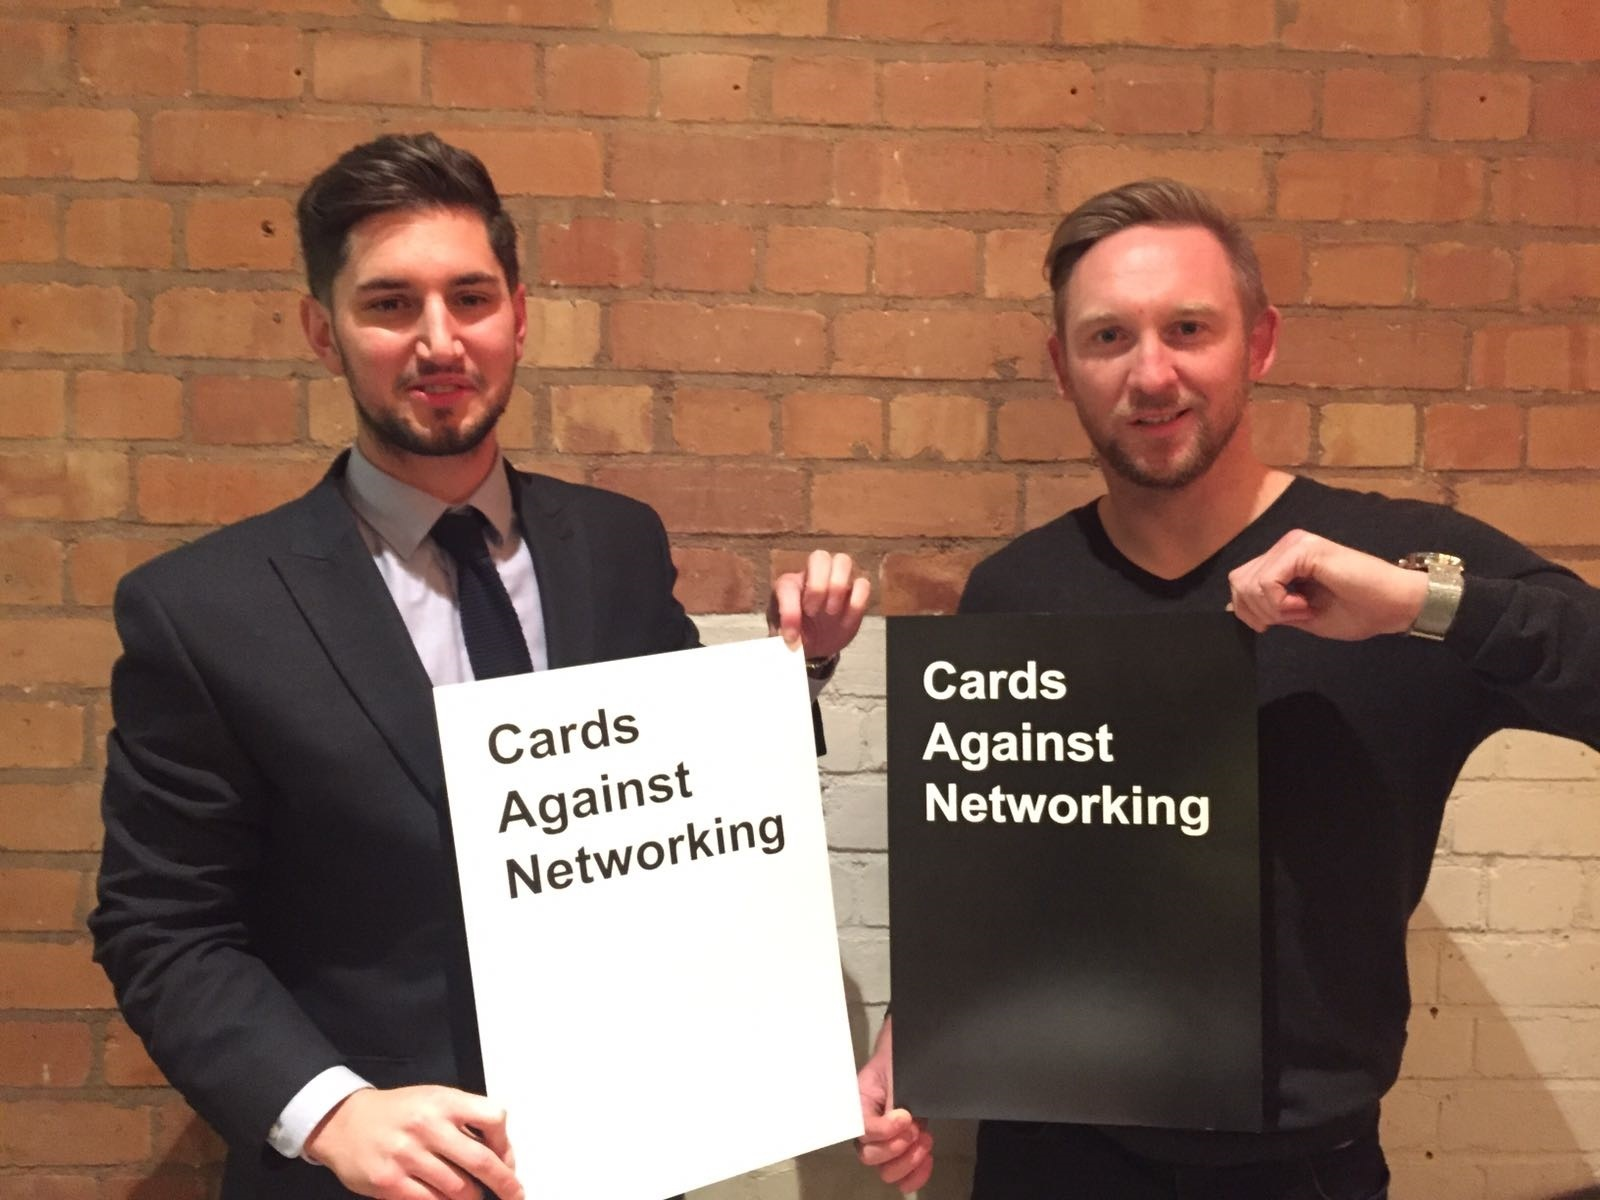 EVENT Richard Hurst, Hursty from Free Radio and local estate agent and marketer Daniel Lewis are running 'Cards Against Networking'.